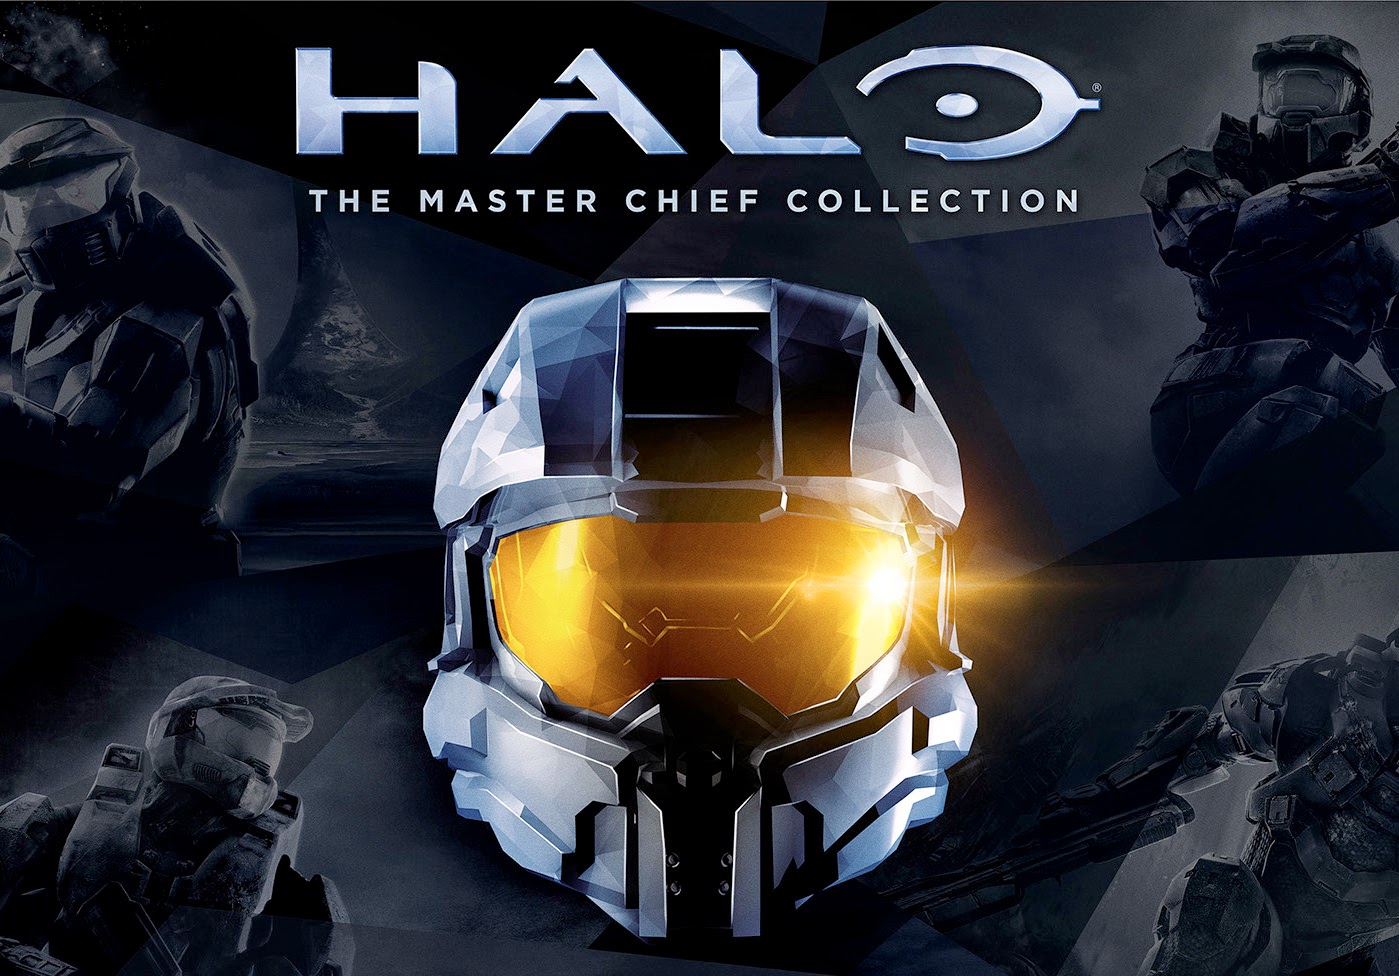 Halo 5: Guardians & Halo: The Master Chief Collection - First Look